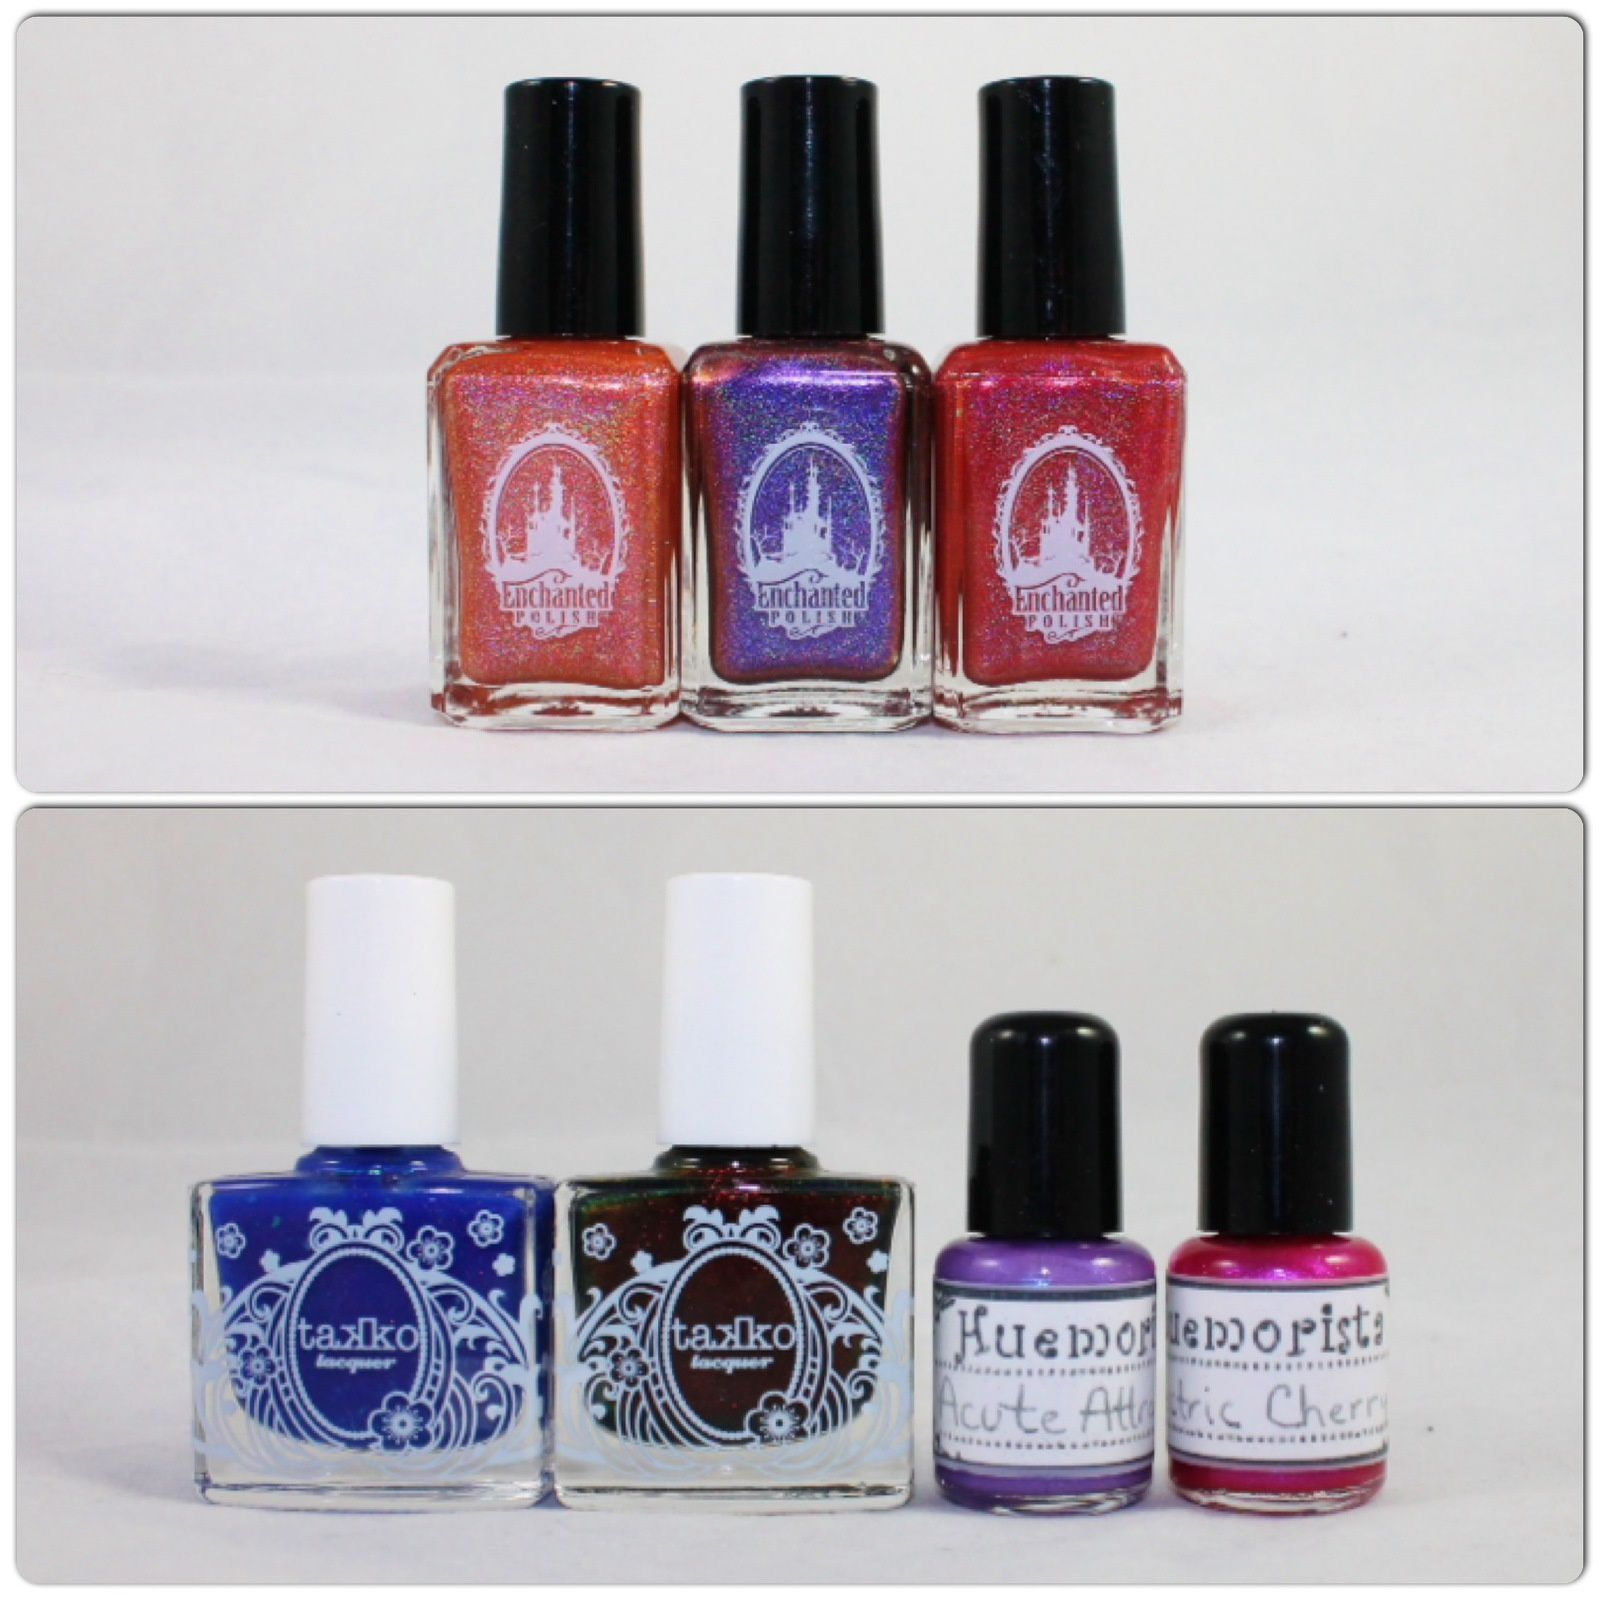 Enchanted Polish May 2014, June 2014 & july 2014. Takko lacquer We're all Mad Here & Opium. Huemorista Acute Attraction & Electric Cherry